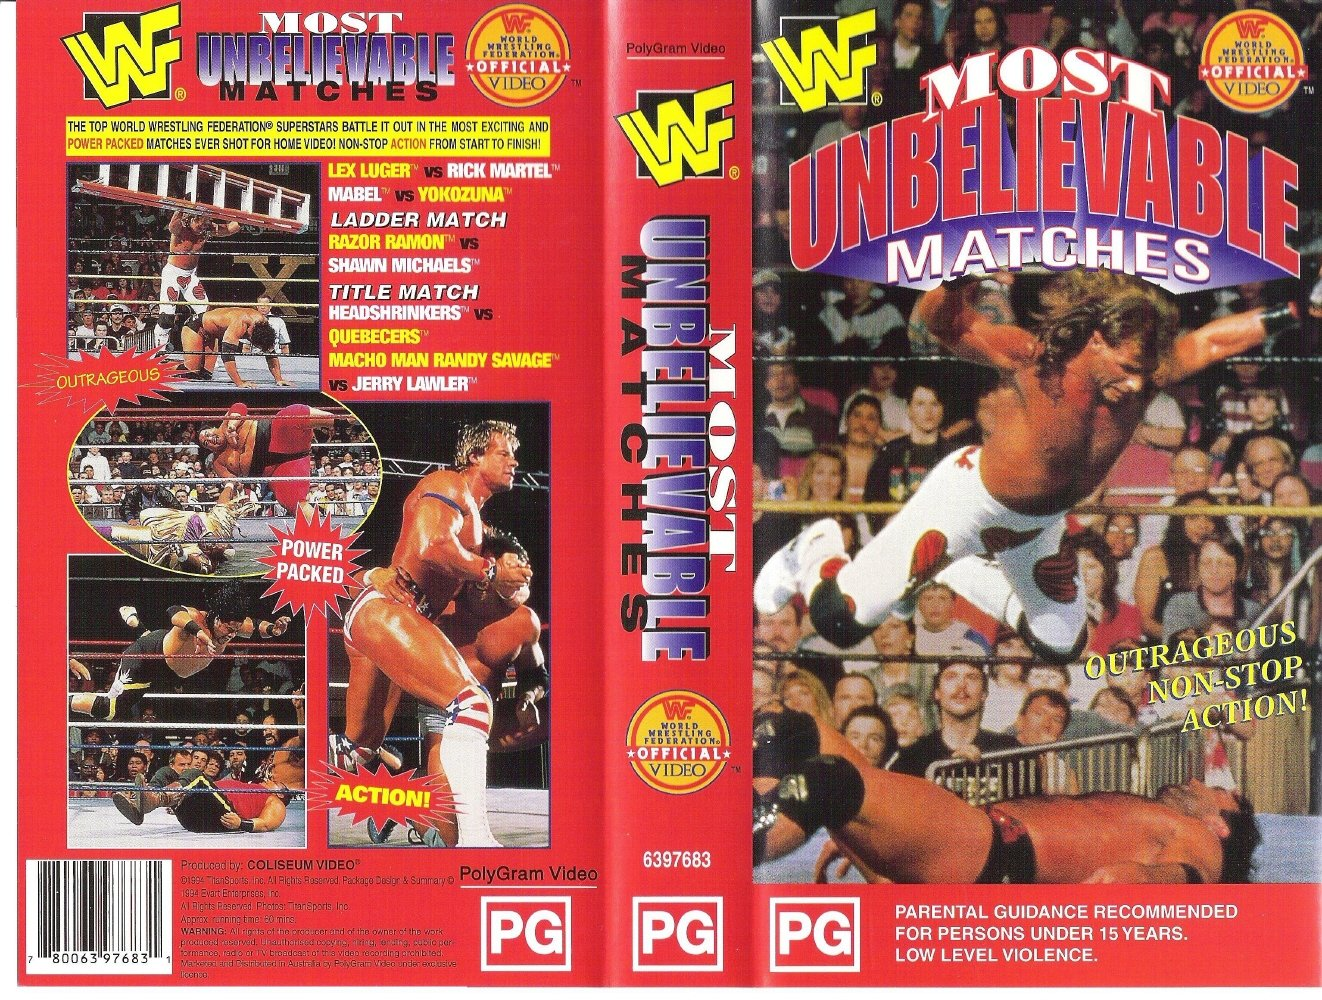 Wwf_Most_Unbelievable_Matches-front